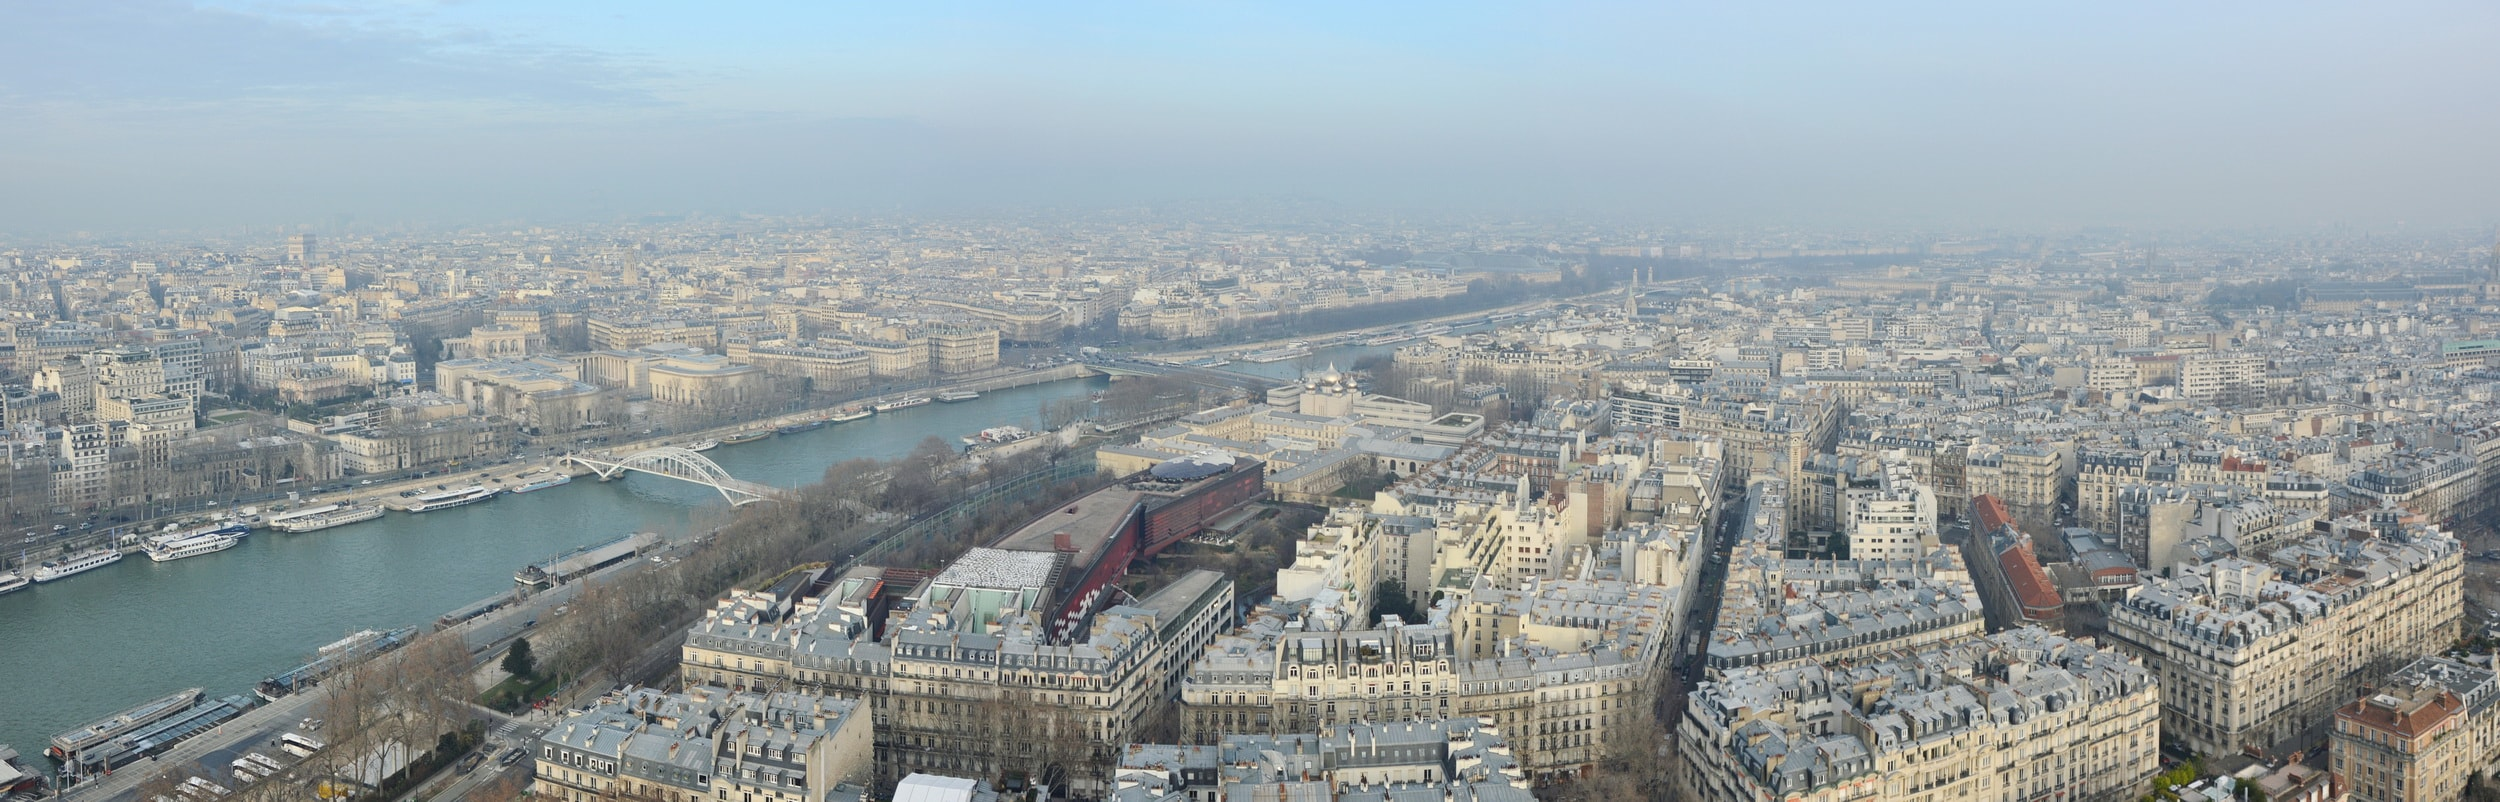 Looking to the north from the 2nd level of the Eiffel Tower